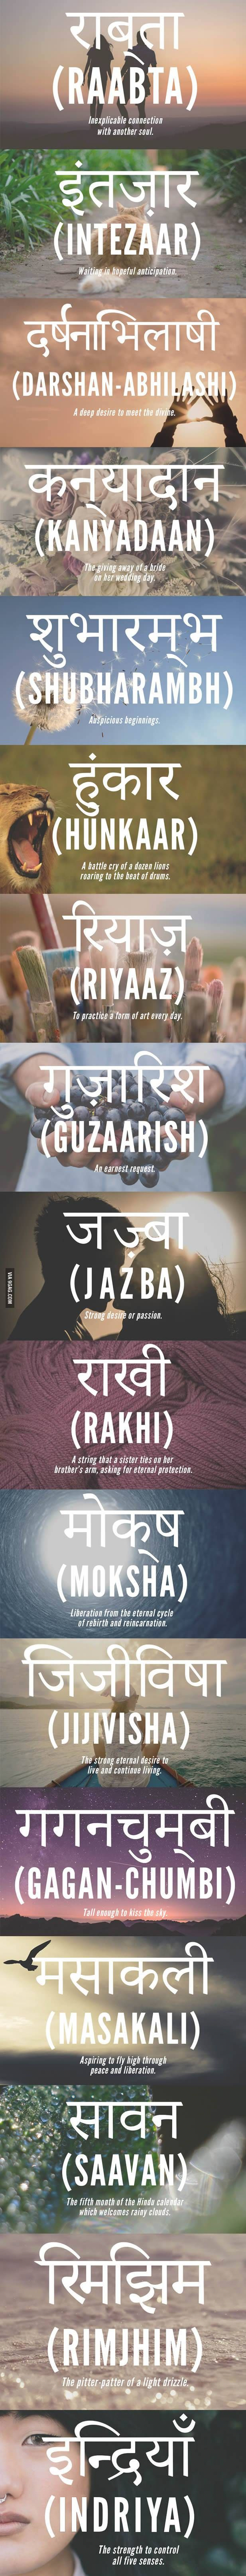 17 Beautifully Untranslatable Hindi Words You Should Add To Your Vocabulary Right Now - 9GAG